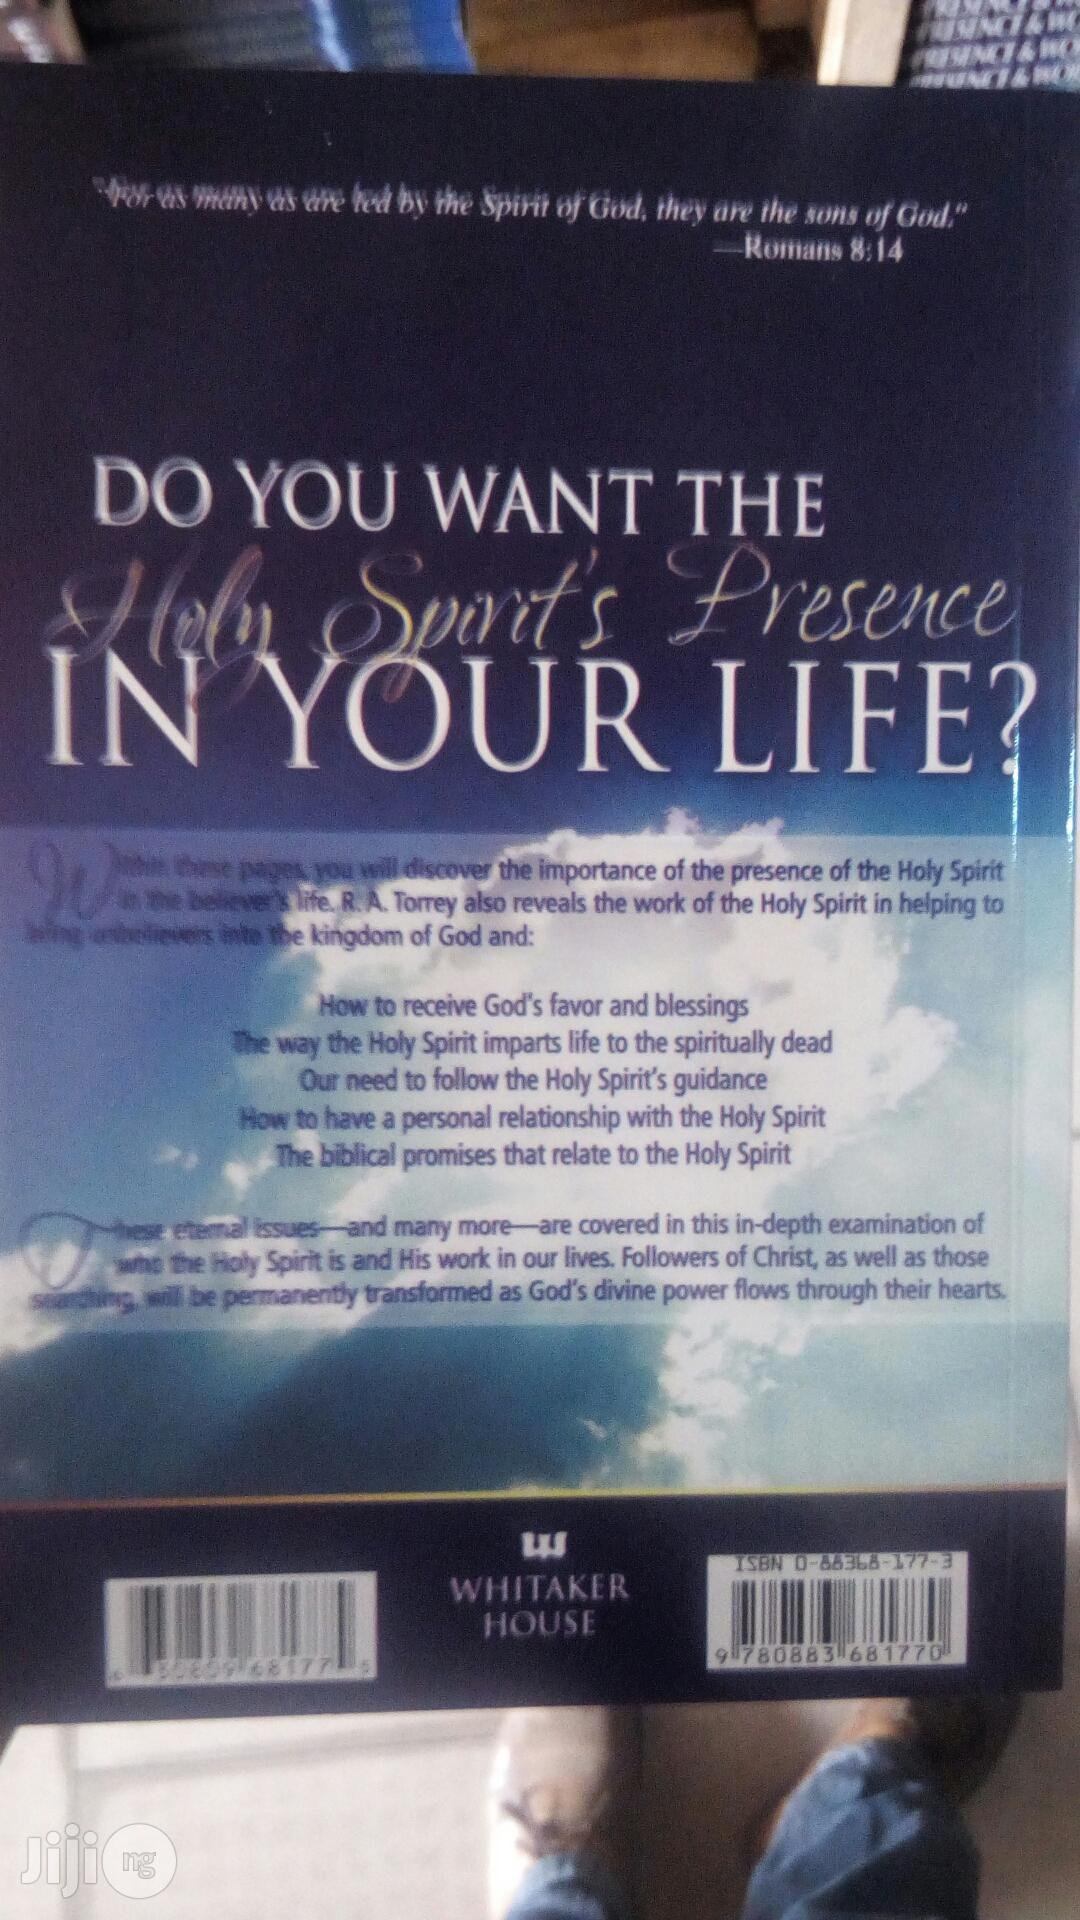 Presence And Work Of The Holy Spirit By R A TORREY   Books & Games for sale in Yaba, Lagos State, Nigeria